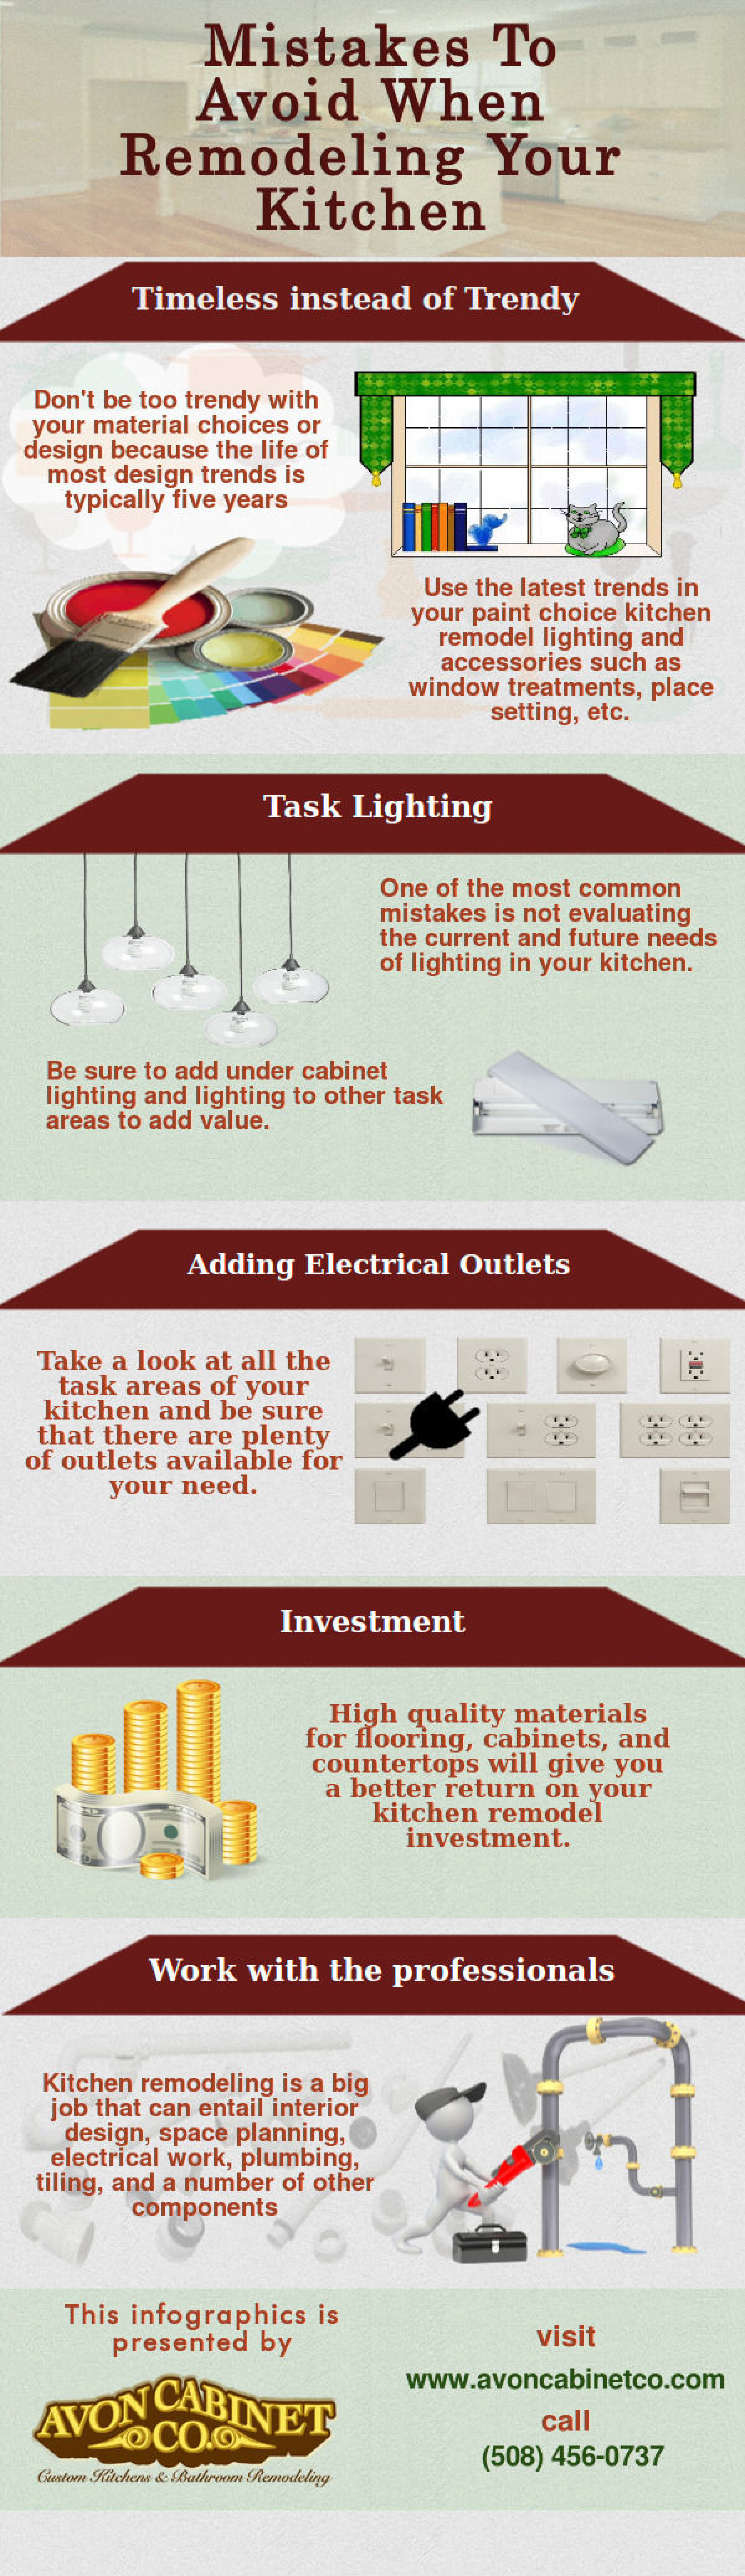 Mistakes to Avoid When Remodeling Your Kitchen Infographic